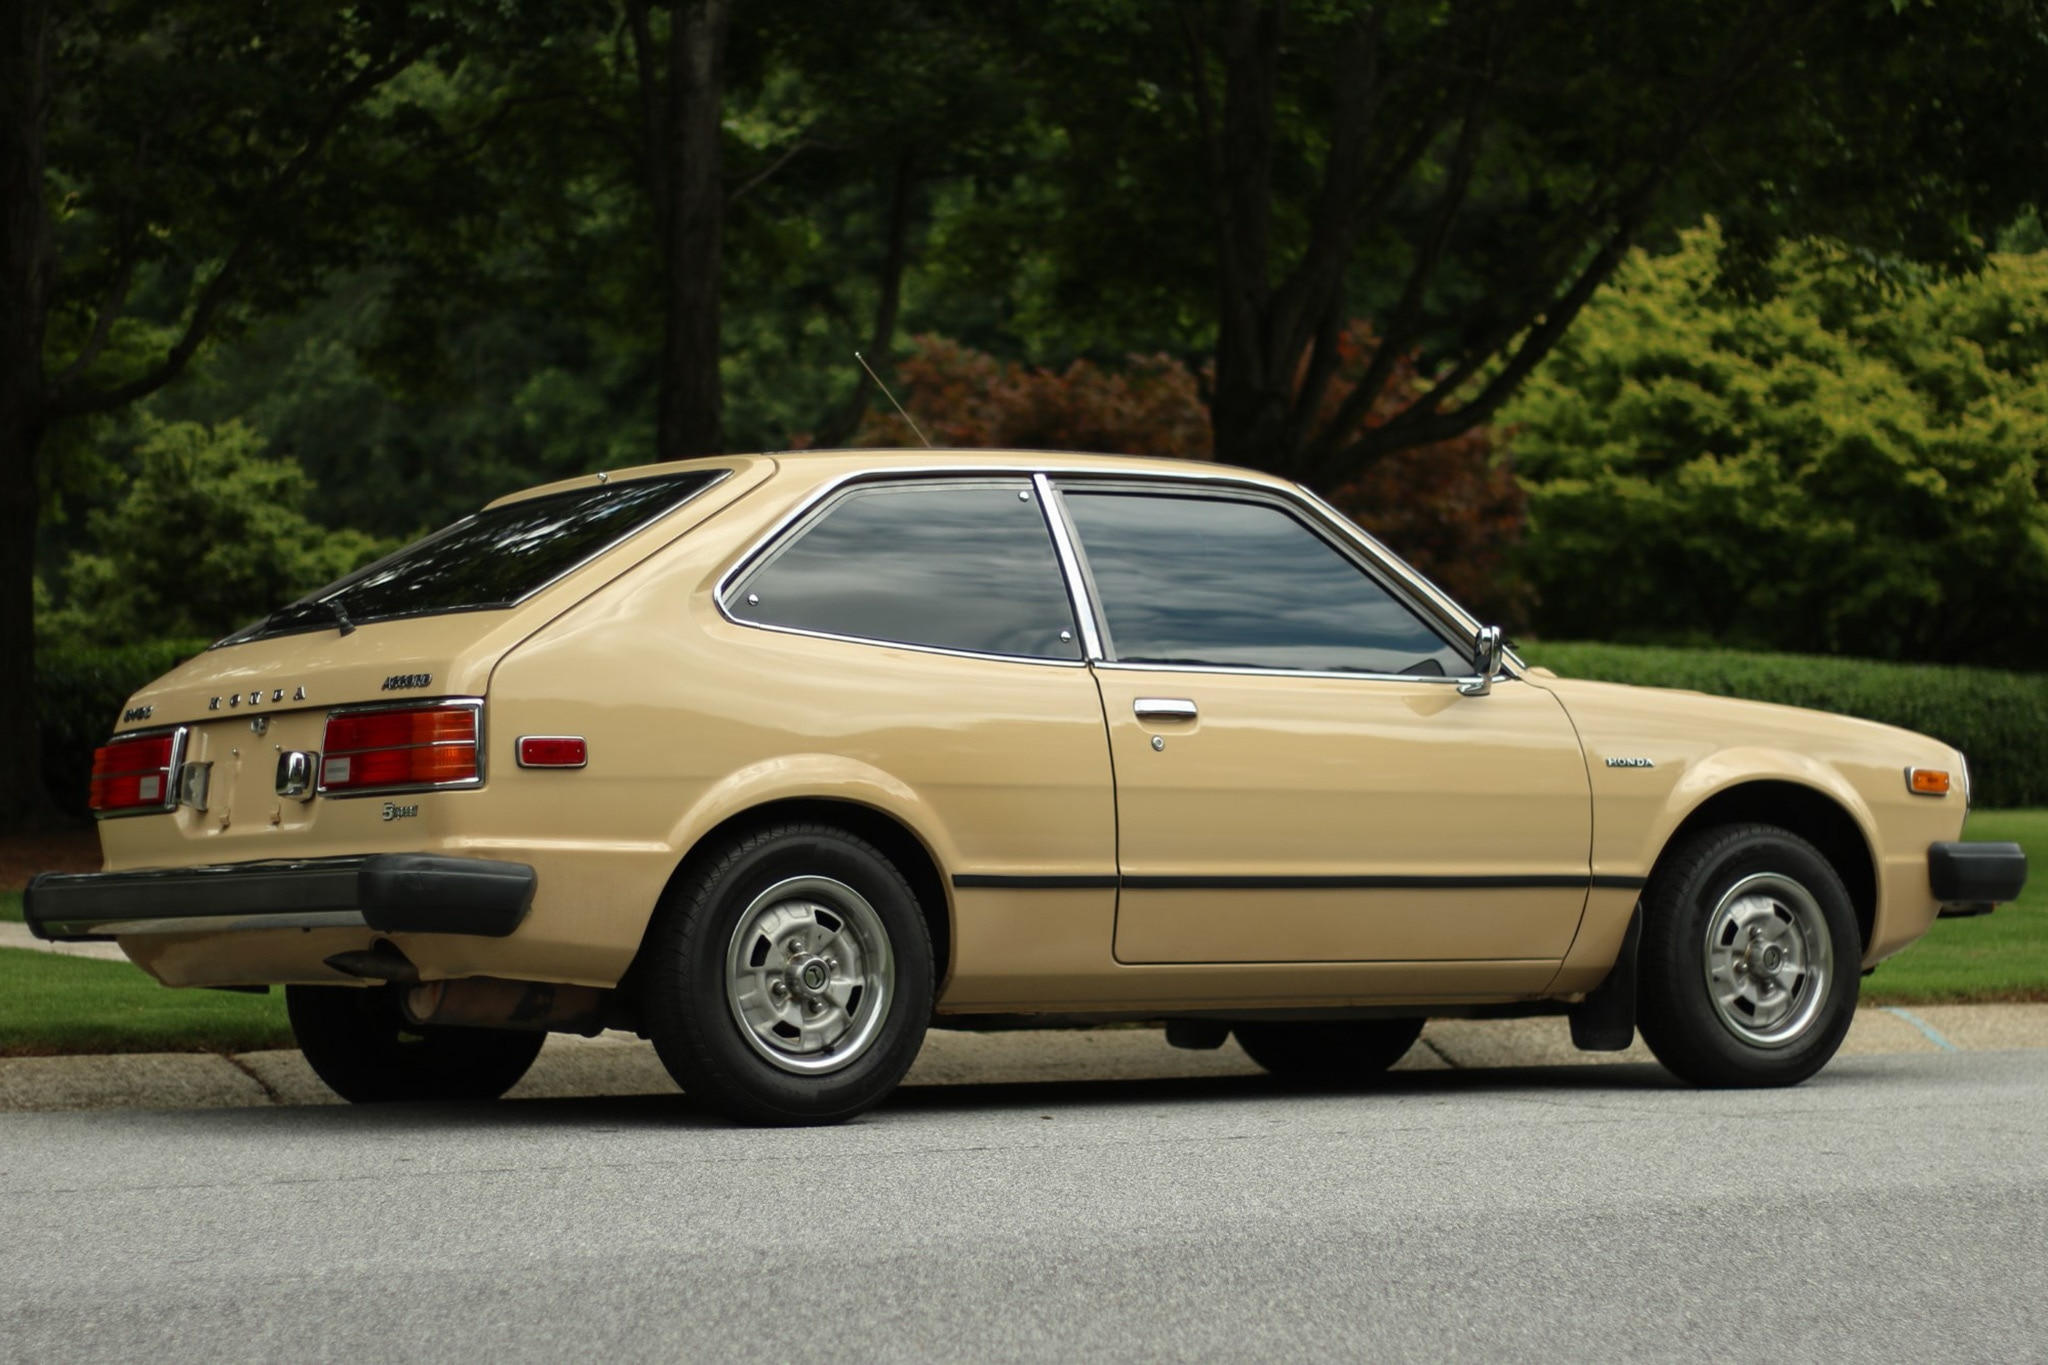 Just Listed: 1979 Honda Accord Hatchback | Automobile Magazine on honda civic si, 1979 ford pinto hatchback, 1979 chevy nova hatchback, 1979 toyota corona hatchback, 1979 chevrolet corvette hatchback, 1980 honda hatchback, 1979 pontiac sunbird hatchback, honda accord, mazda rx-7, honda fit, 1979 dodge dart hatchback, honda prelude, toyota supra, 1979 honda accord, 1979 mazda 323 hatchback, mitsubishi lancer, honda nsx, nissan altima, honda accord hatchback, 1979 nissan bluebird hatchback, 1979 chevrolet monza hatchback, honda s2000, 1979 toyota tercel hatchback, 1979 ford mustang hatchback, 1979 honda crv, 1979 toyota celica gt hatchback, toyota celica, 1979 datsun 310 hatchback, honda type r, toyota corolla, honda city, 1979 dodge omni hatchback, honda integra, honda civic type r, toyota camry, 1979 oldsmobile firenza hatchback, 1996 honda dx hatchback, honda cr-v, mitsubishi eclipse, volkswagen jetta,